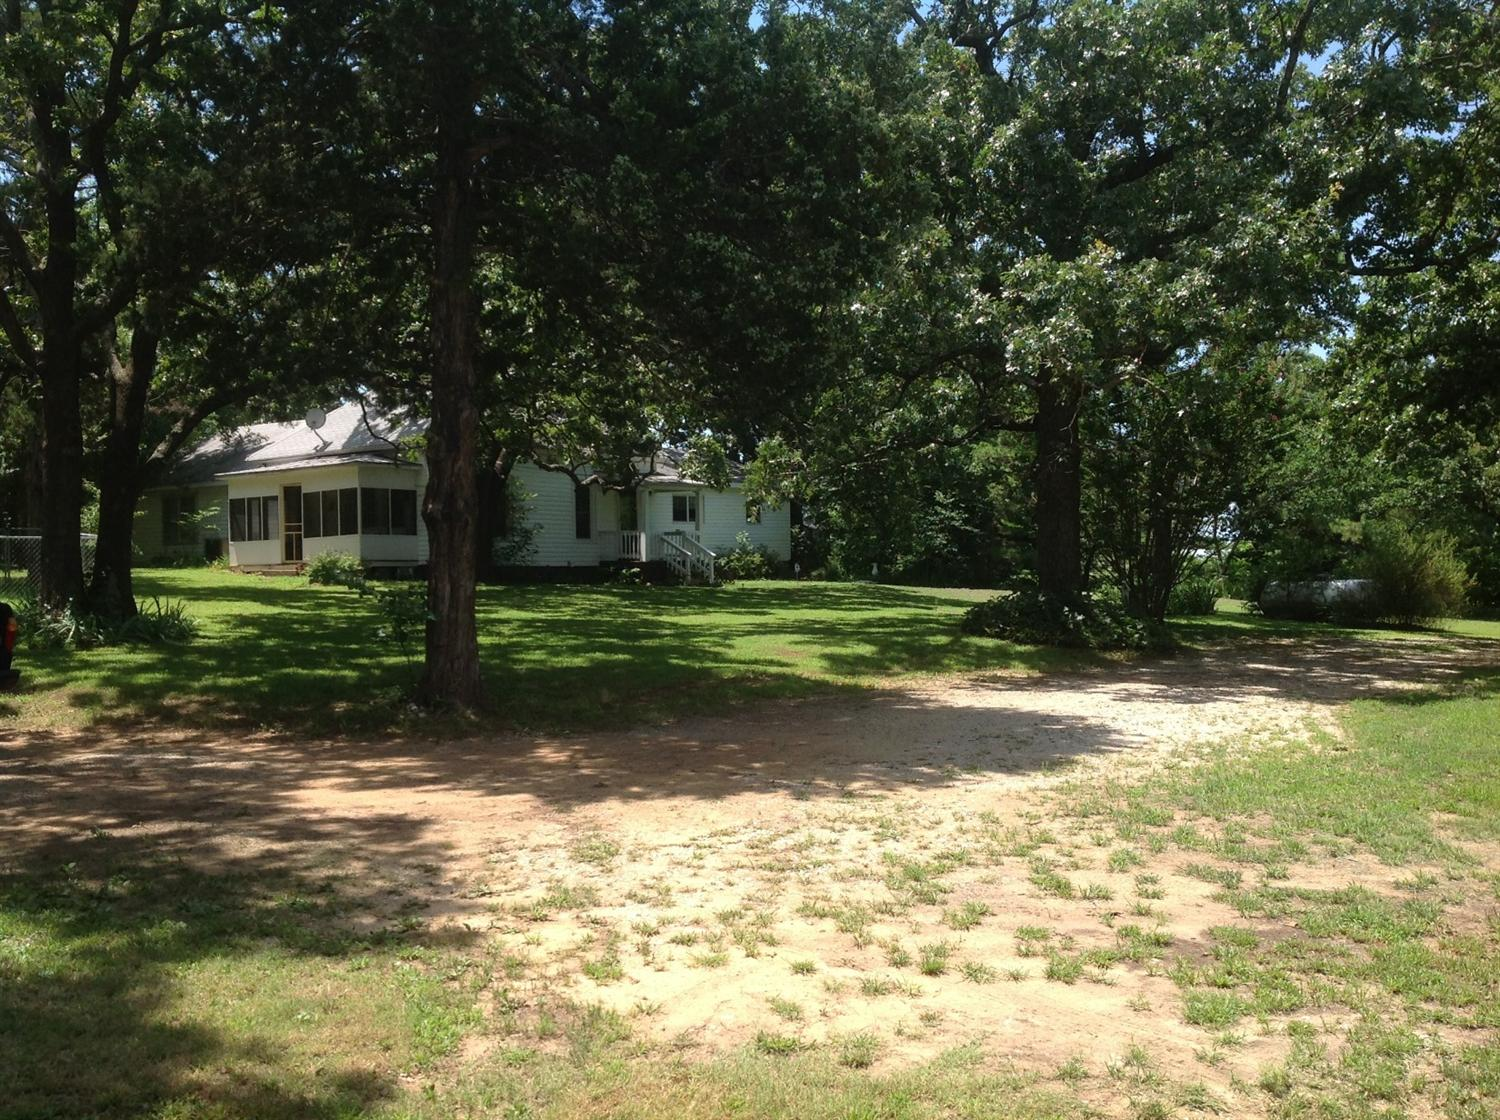 2158 US Hwy 166, Caney, Kansas 67333